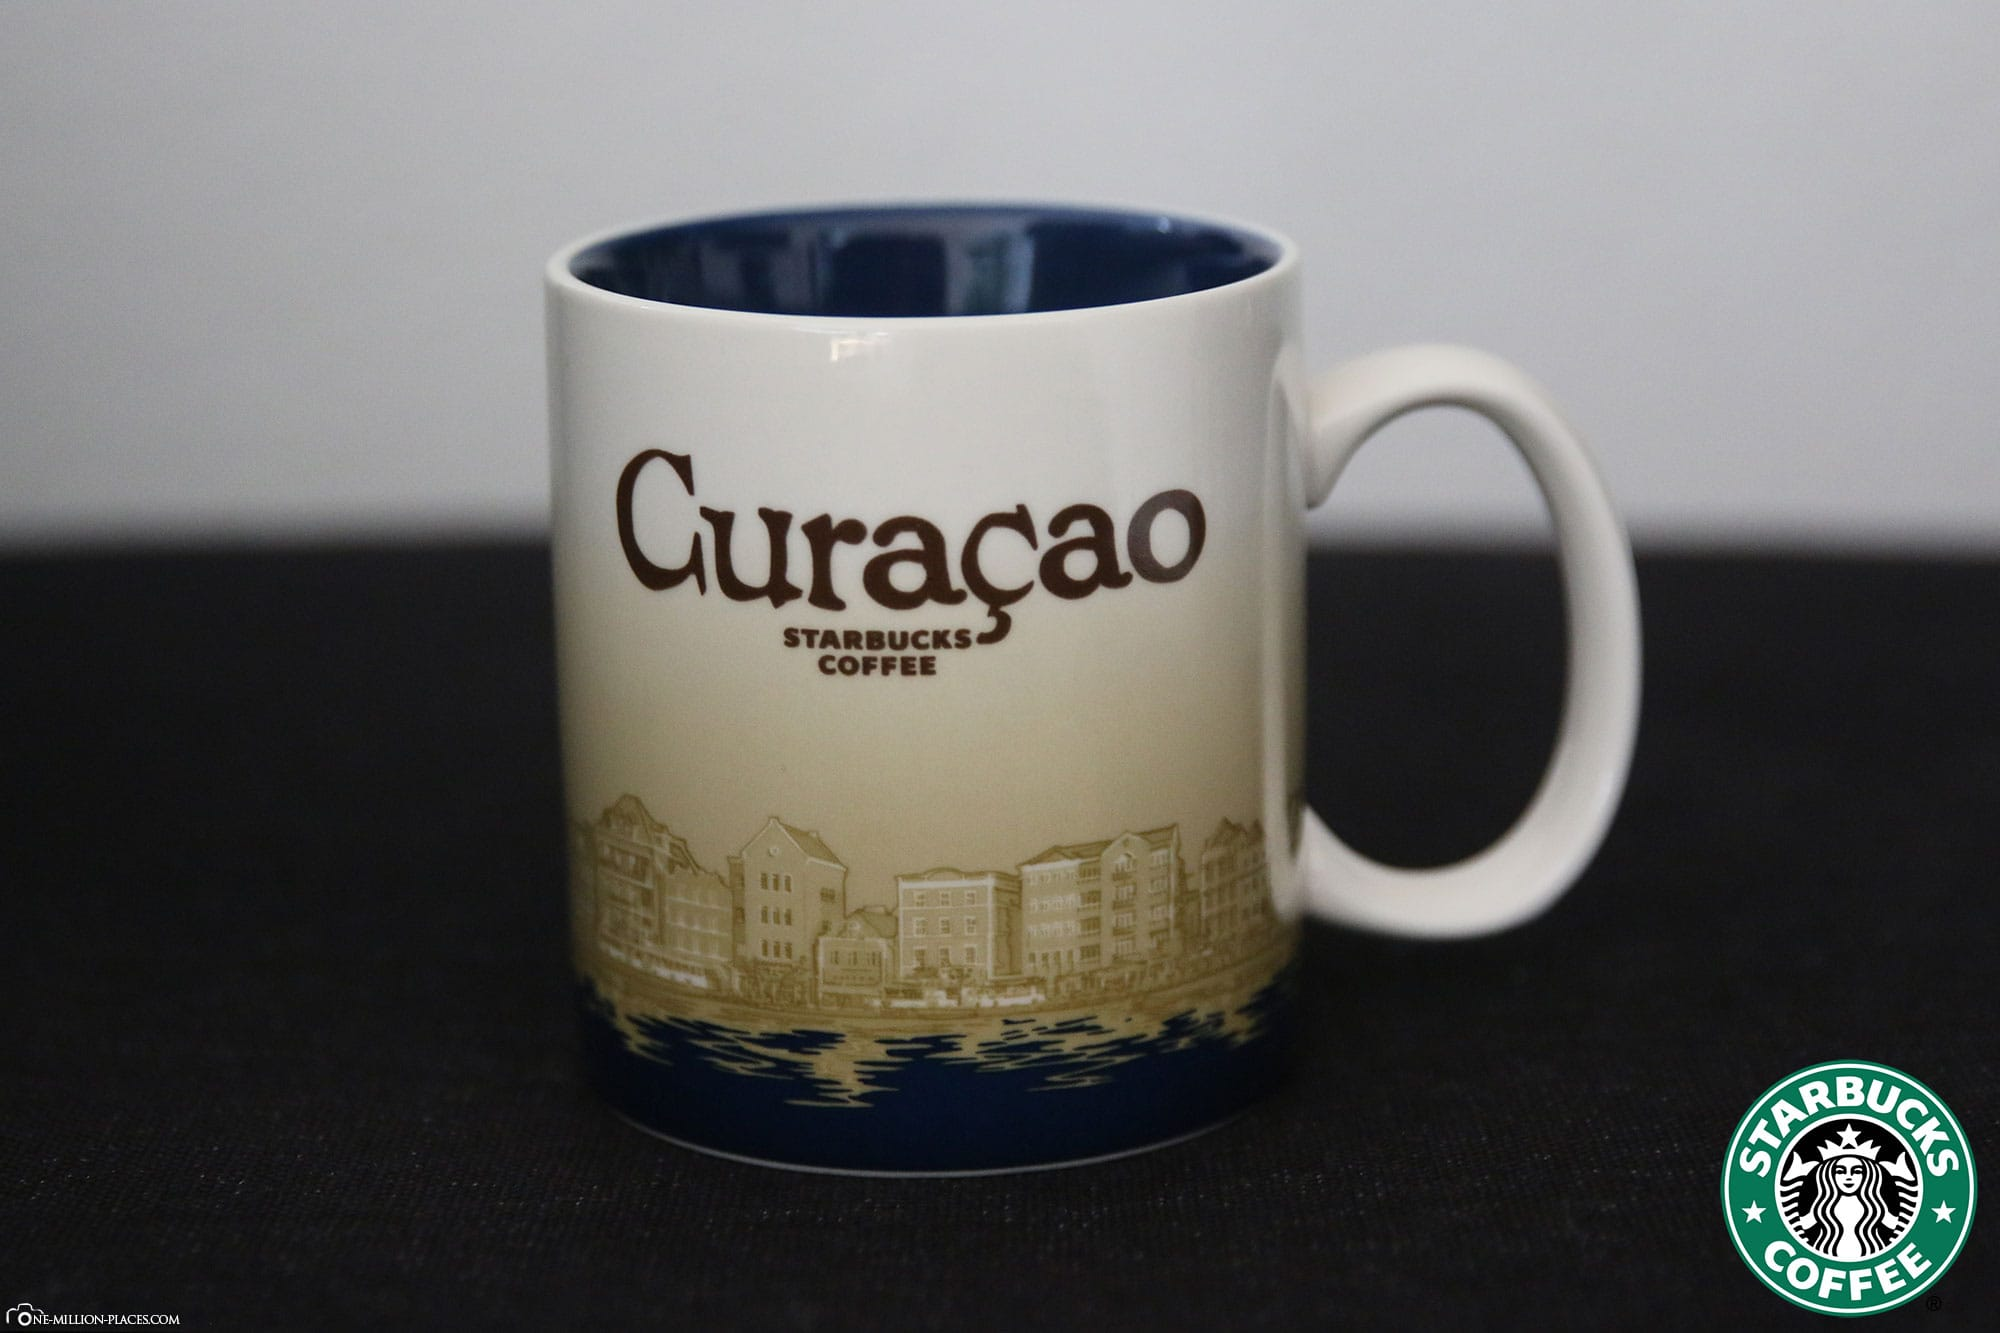 Curacao, Starbucks Cup, Global Icon Series, City Mugs, Collection, ABC Islands, Travelreport